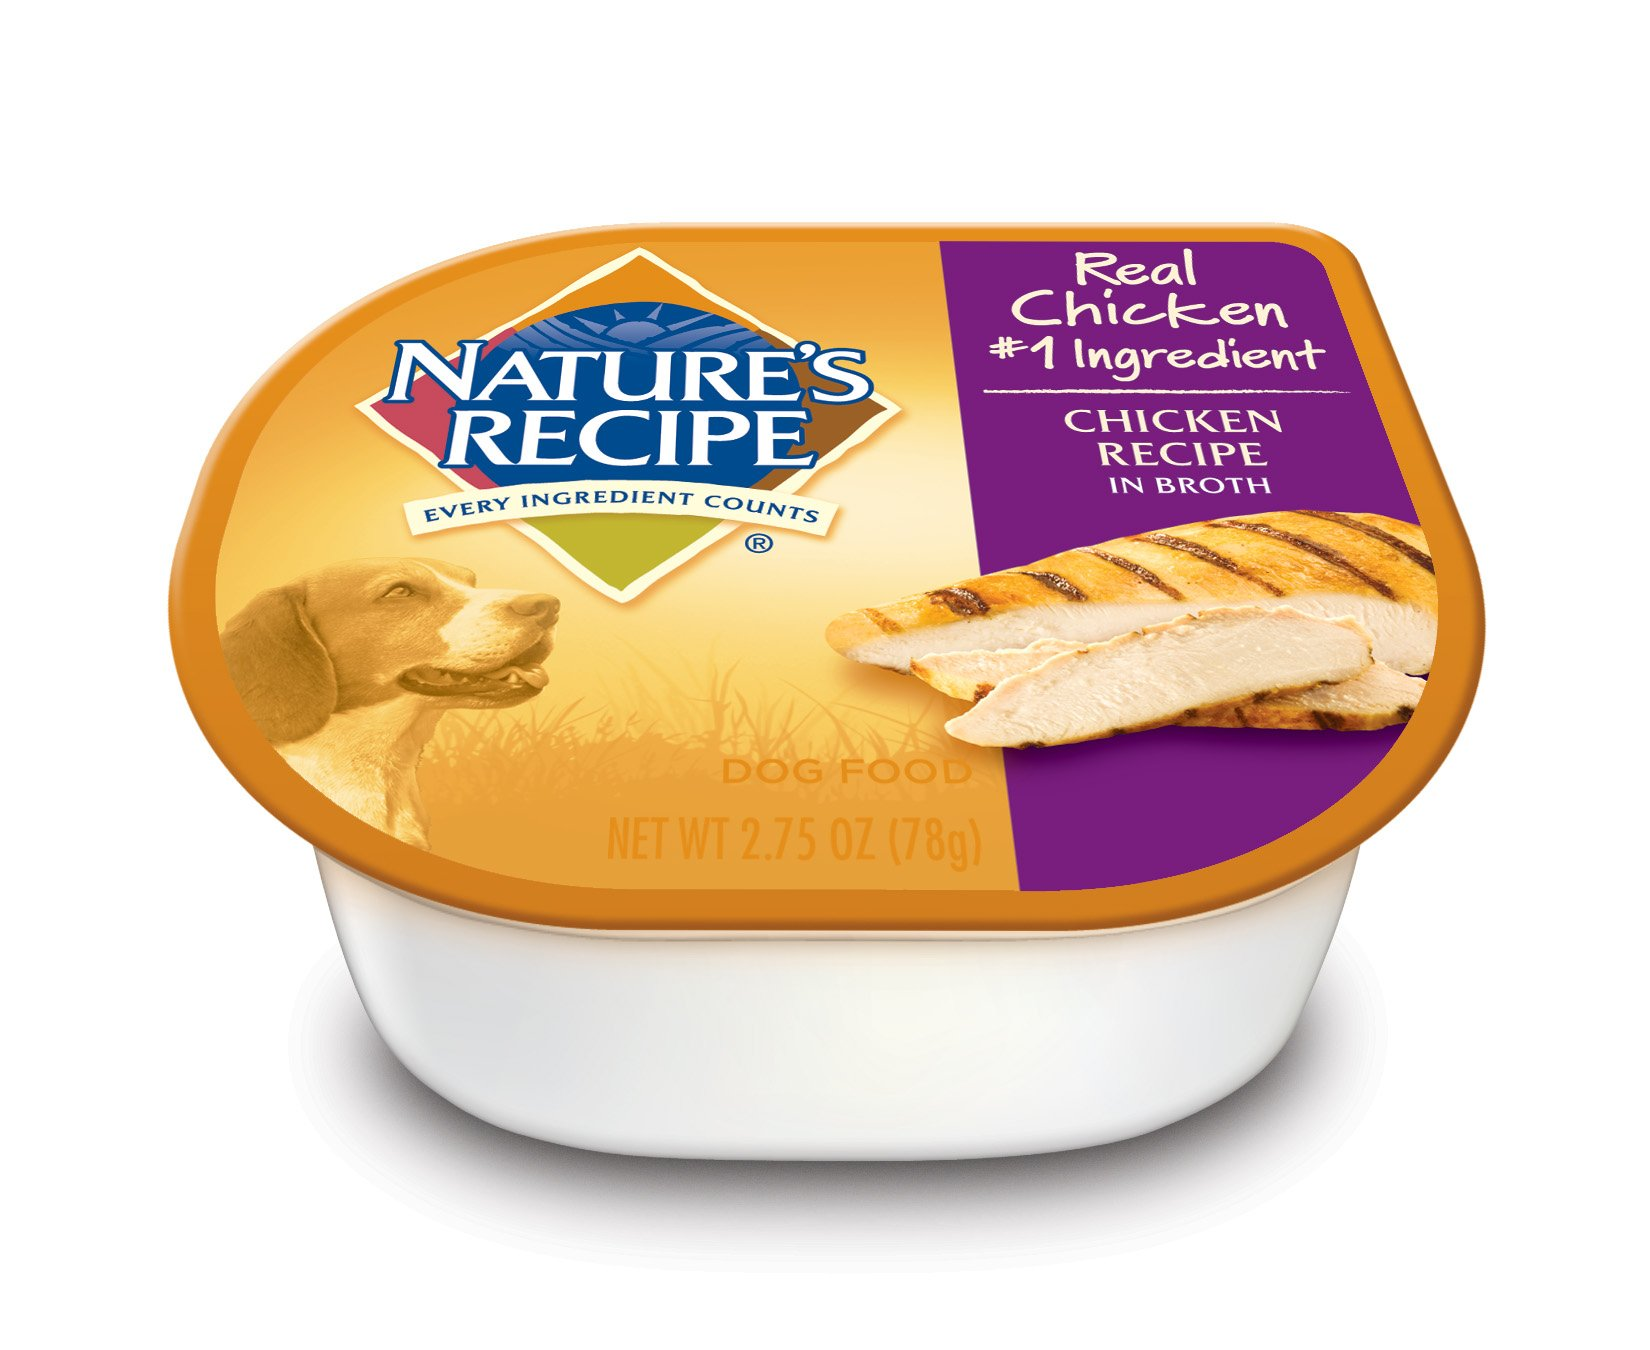 Nature's Recipe Wet Dog Food, Chicken Recipe In Broth, 2.75-Ounce Cup (Pack of 24)